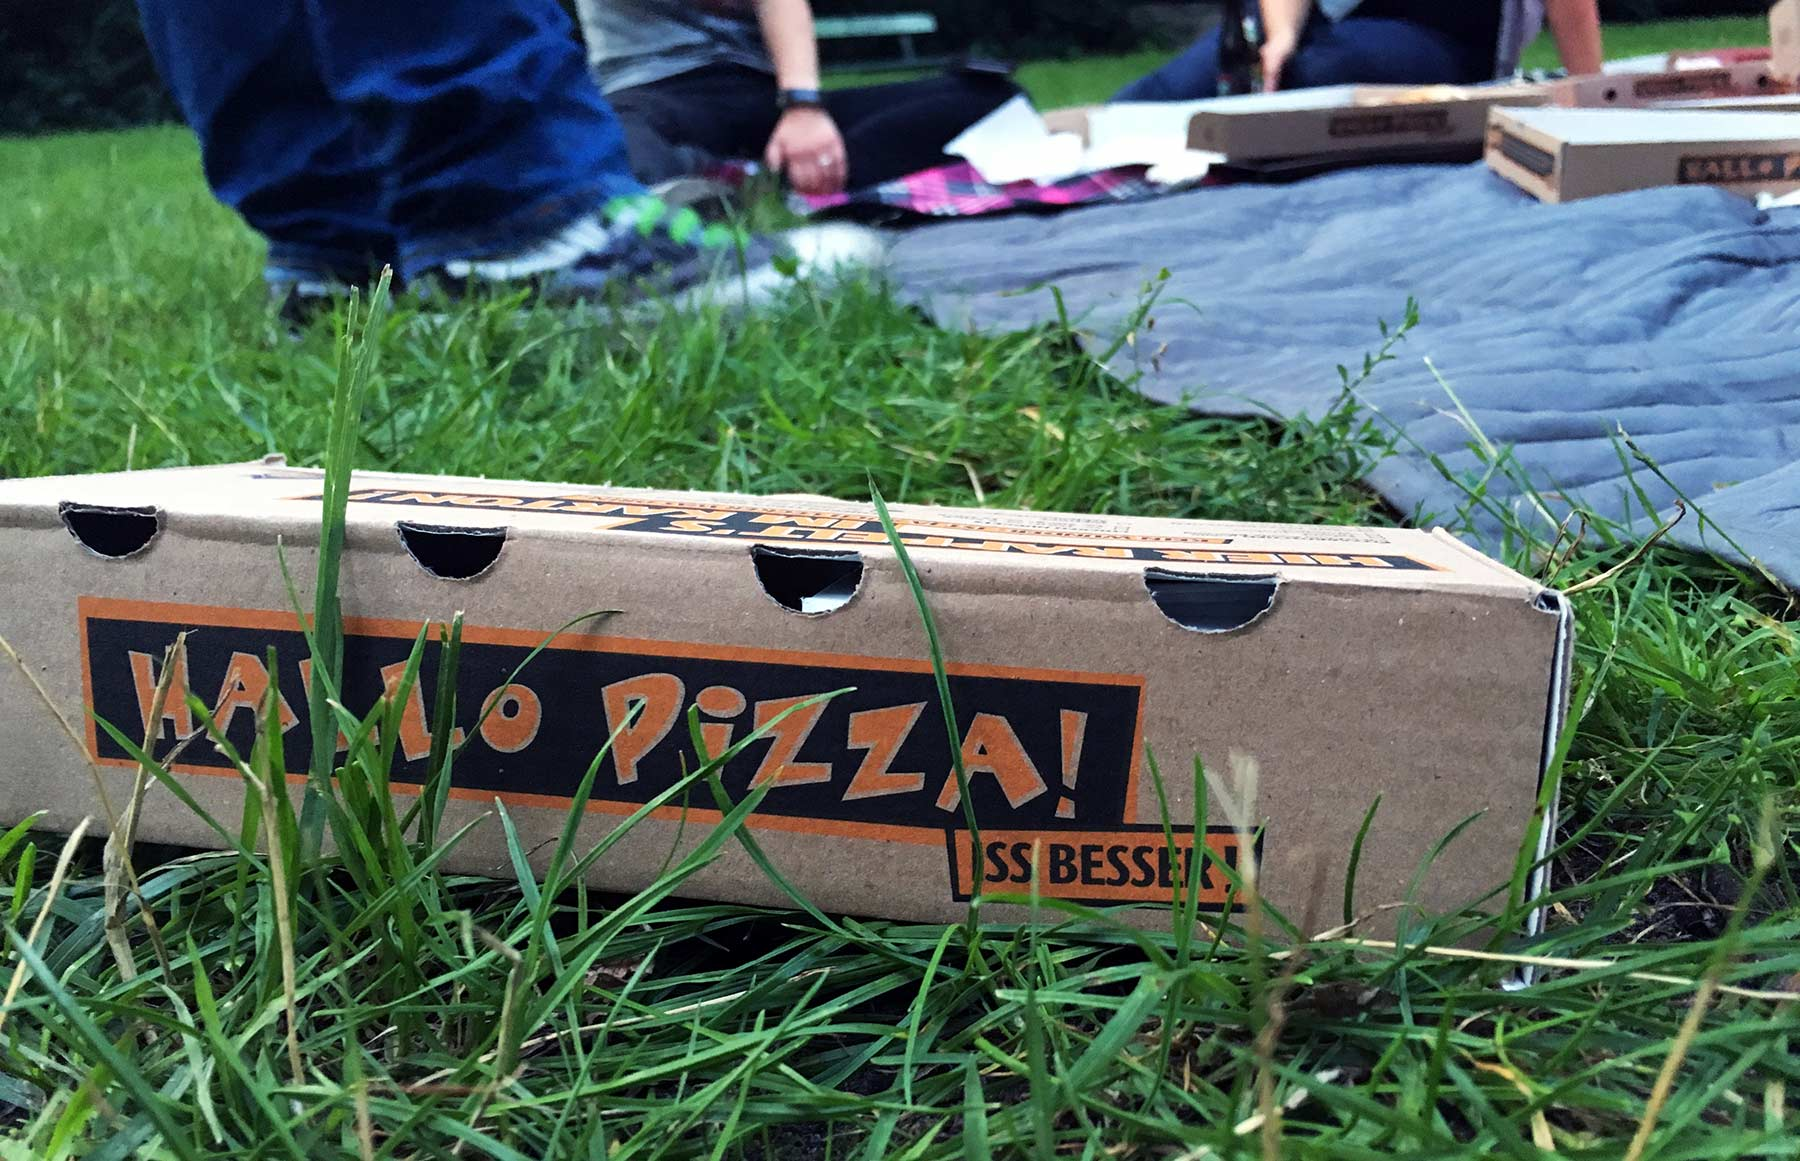 Pizza-Party im Park Hallo-Pizza-im-Park_10